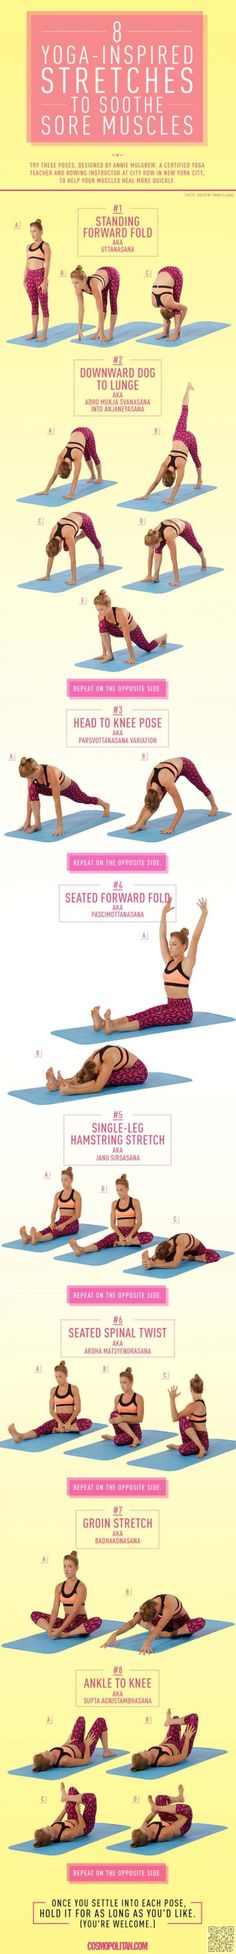 Stretches for Sore Muscles and limber ligaments